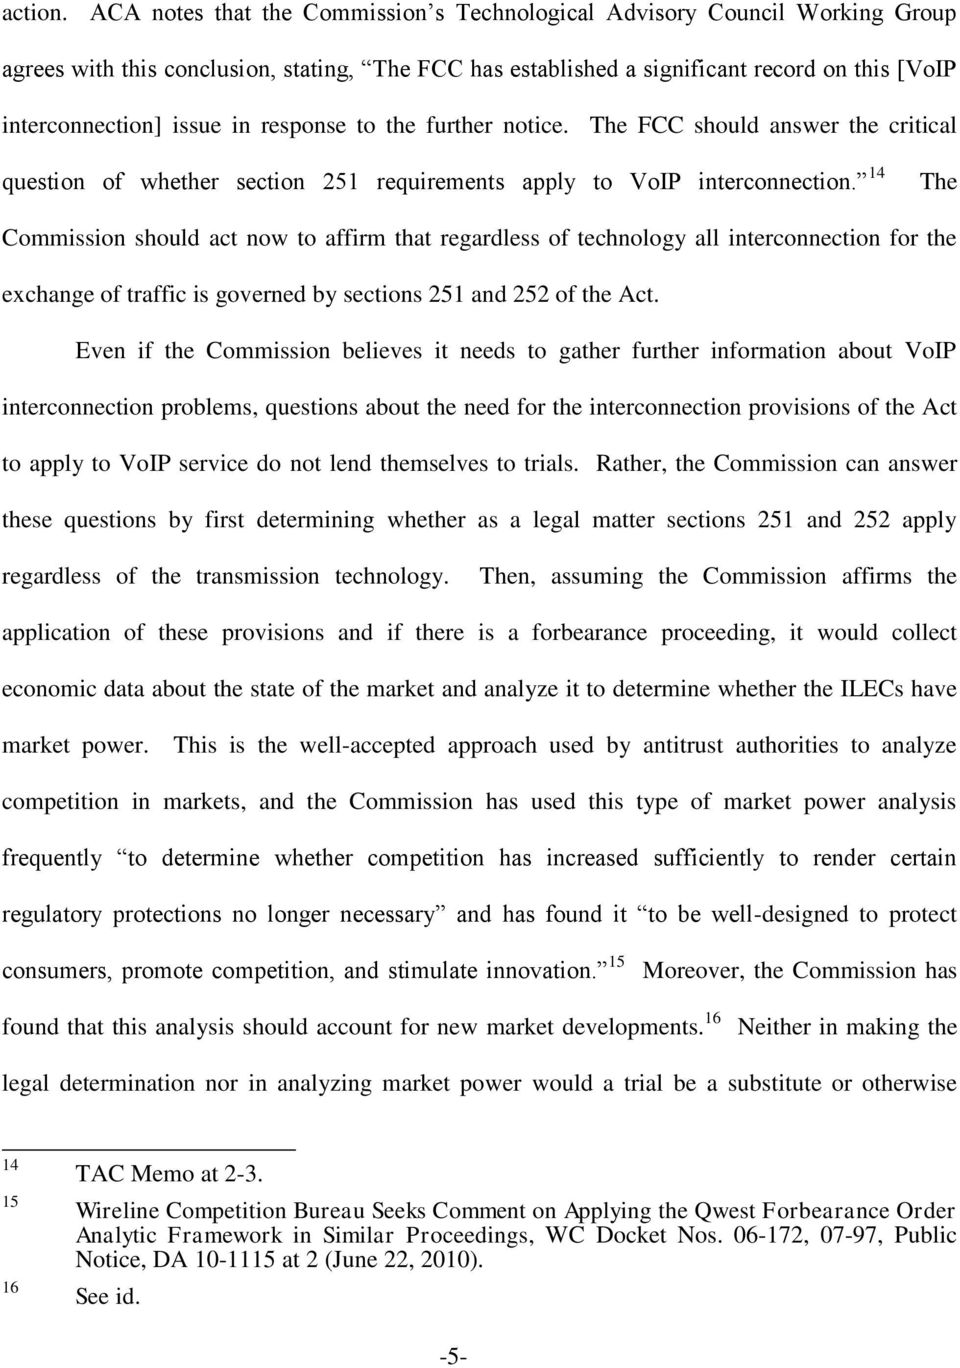 response to the further notice. The FCC should answer the critical question of whether section 251 requirements apply to VoIP interconnection.